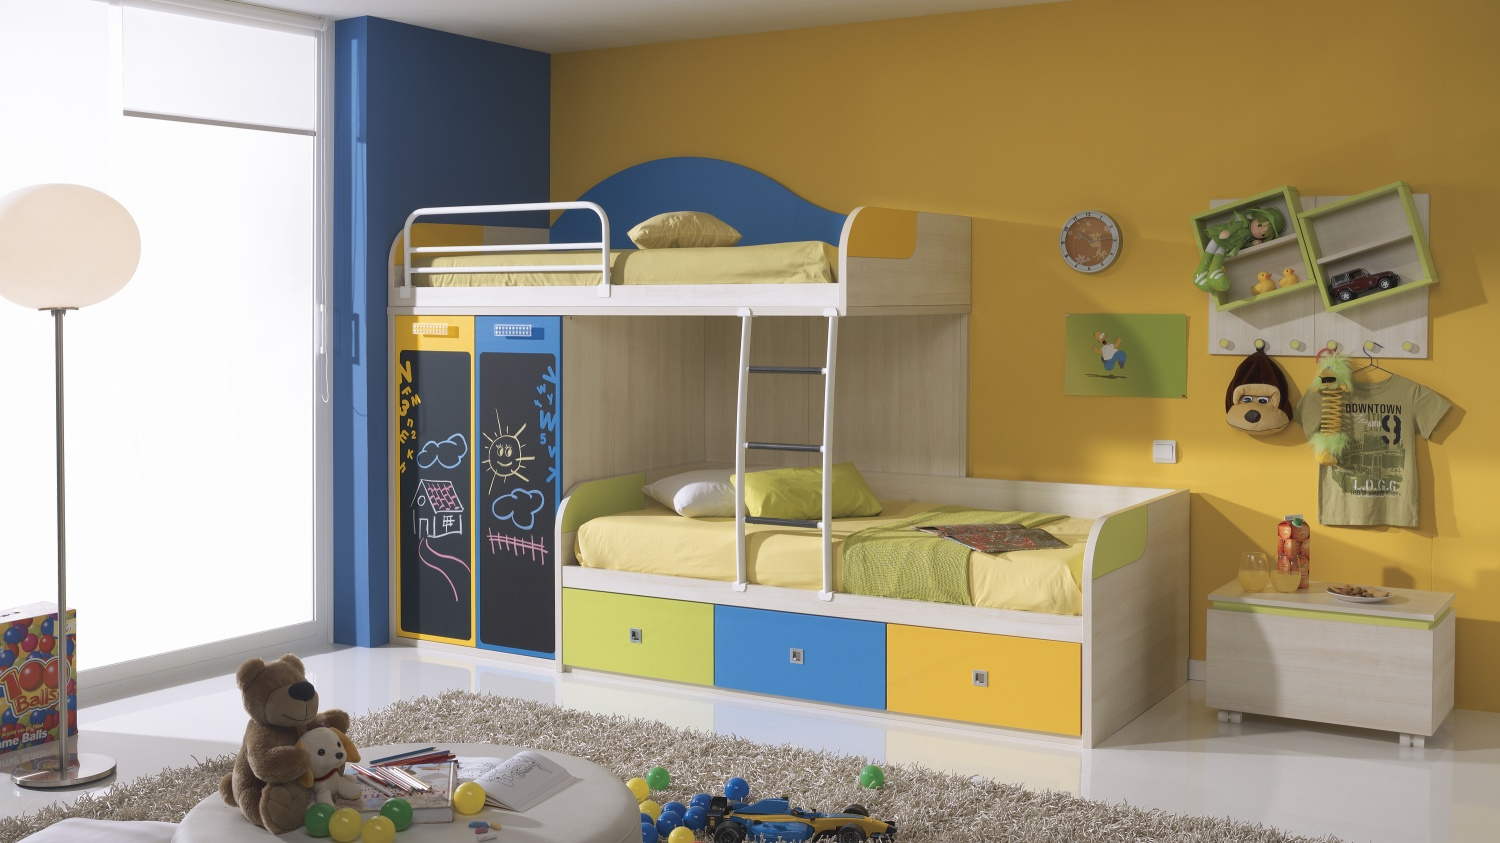 2 4 bunk bed plans bed plans diy blueprints Futon for kids room